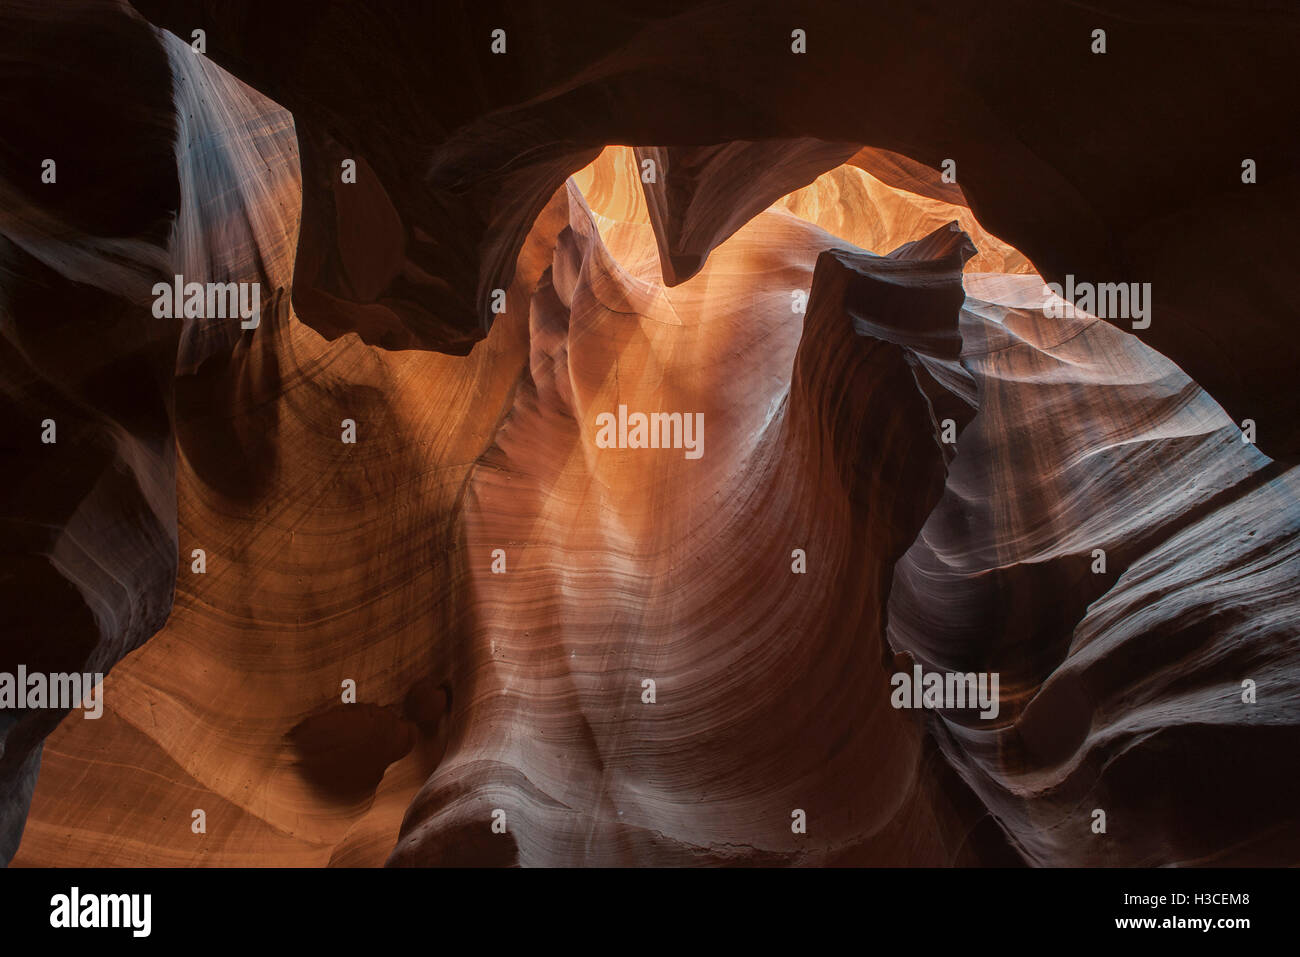 Antelope Canyon, einem Slotcanyon in Arizona, USA Stockfoto